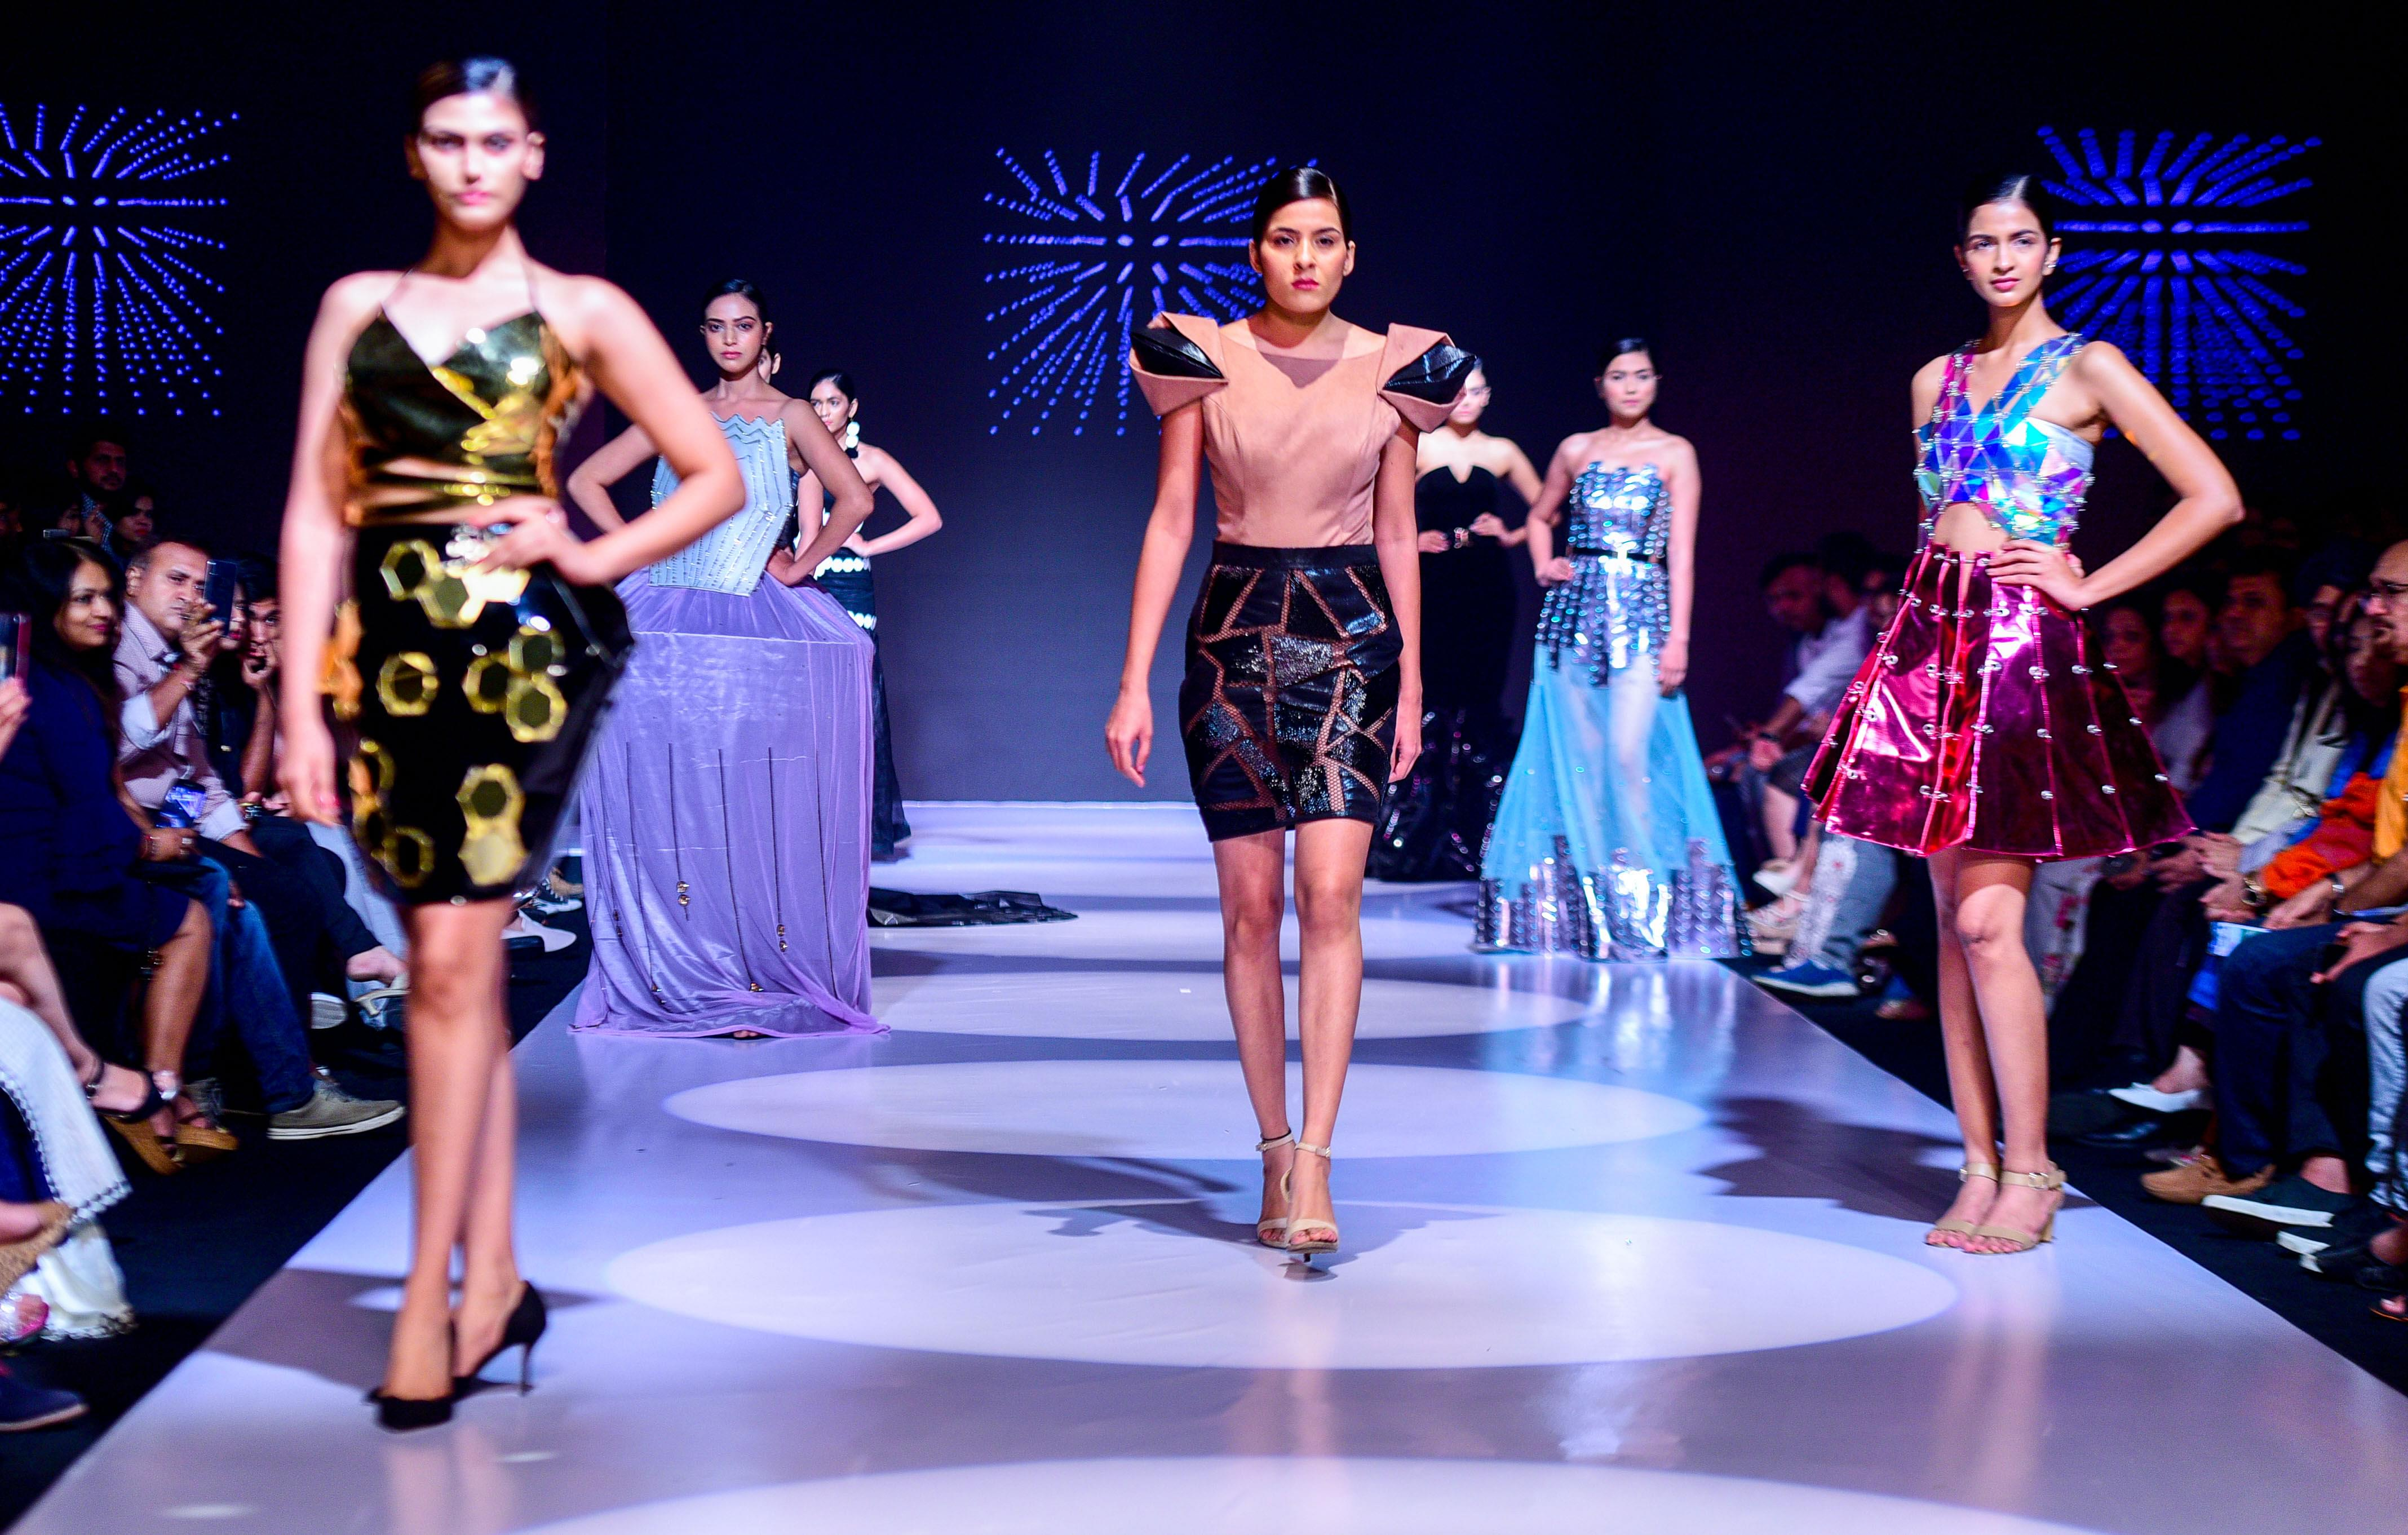 International Institute Of Fashion Design Inifd Bandra Navi Mumbai Admissions Contact Website Facilities 2020 2021